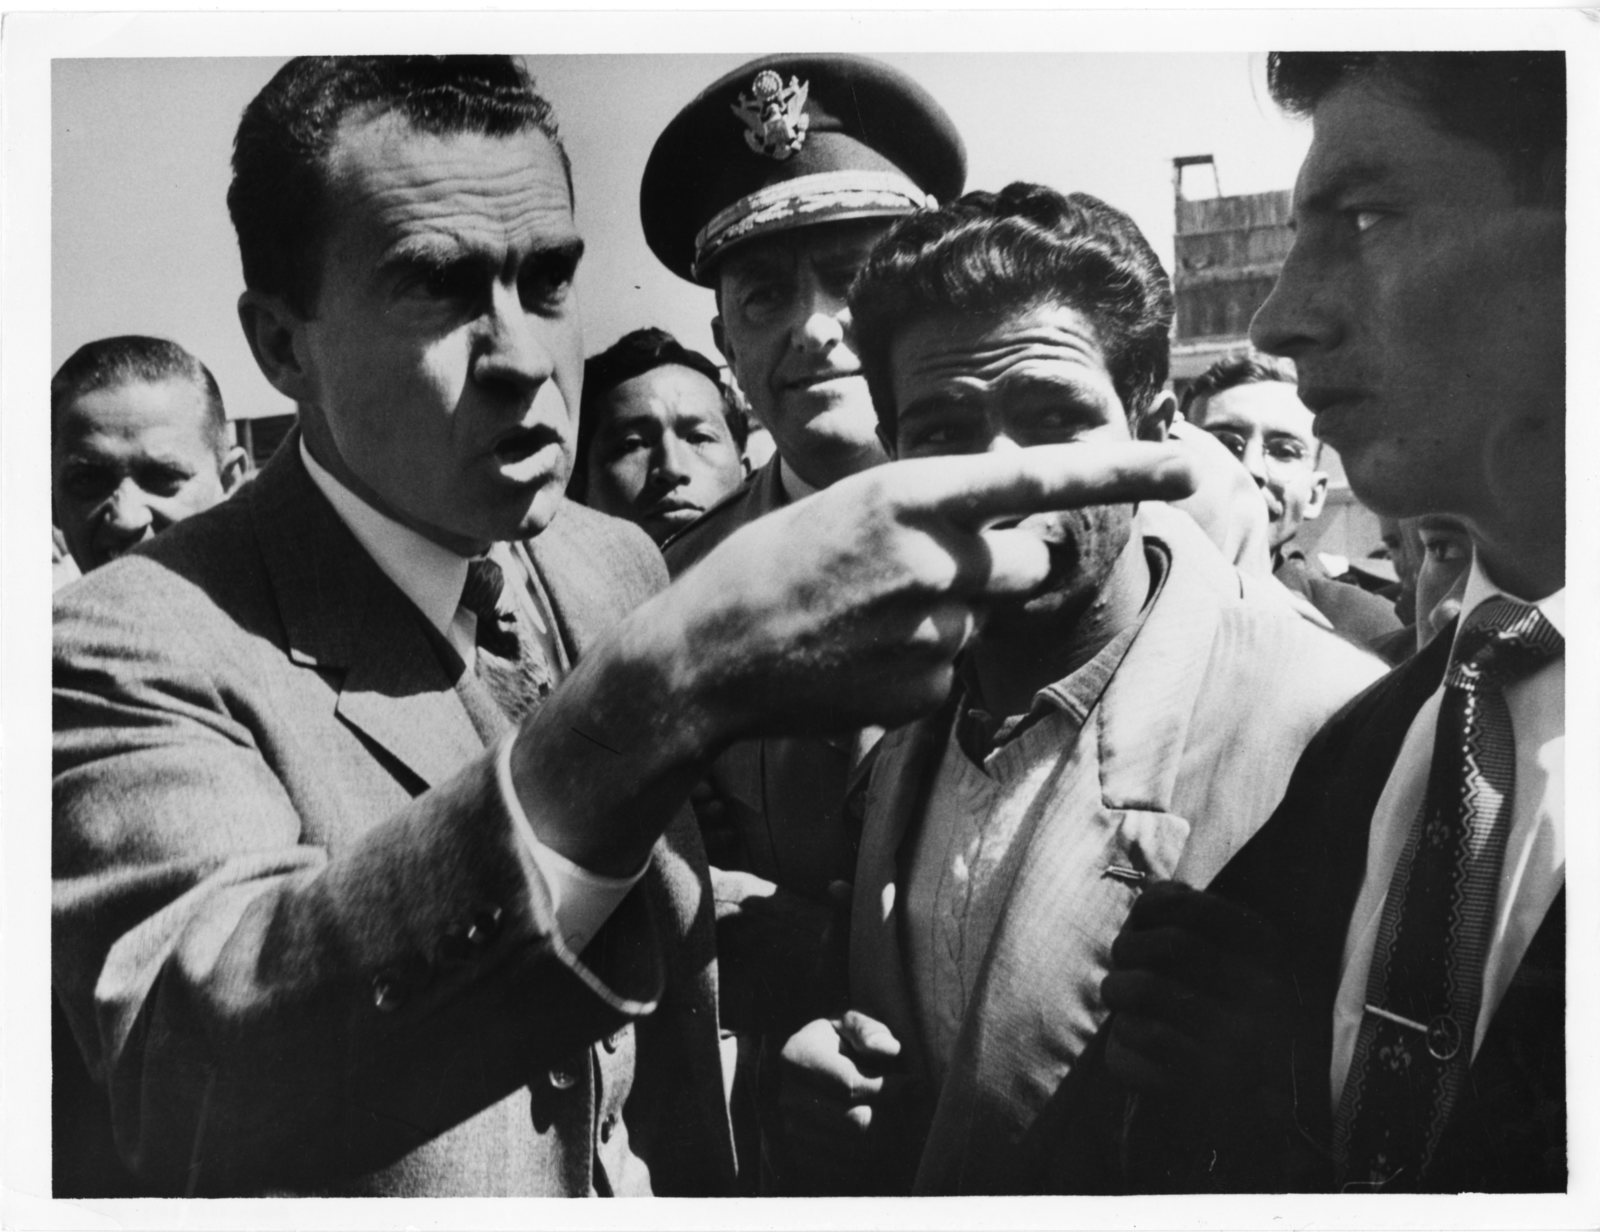 Vice President Richard Nixon argues with a student during his visit to the National University of San Marcos in Lima, Peru